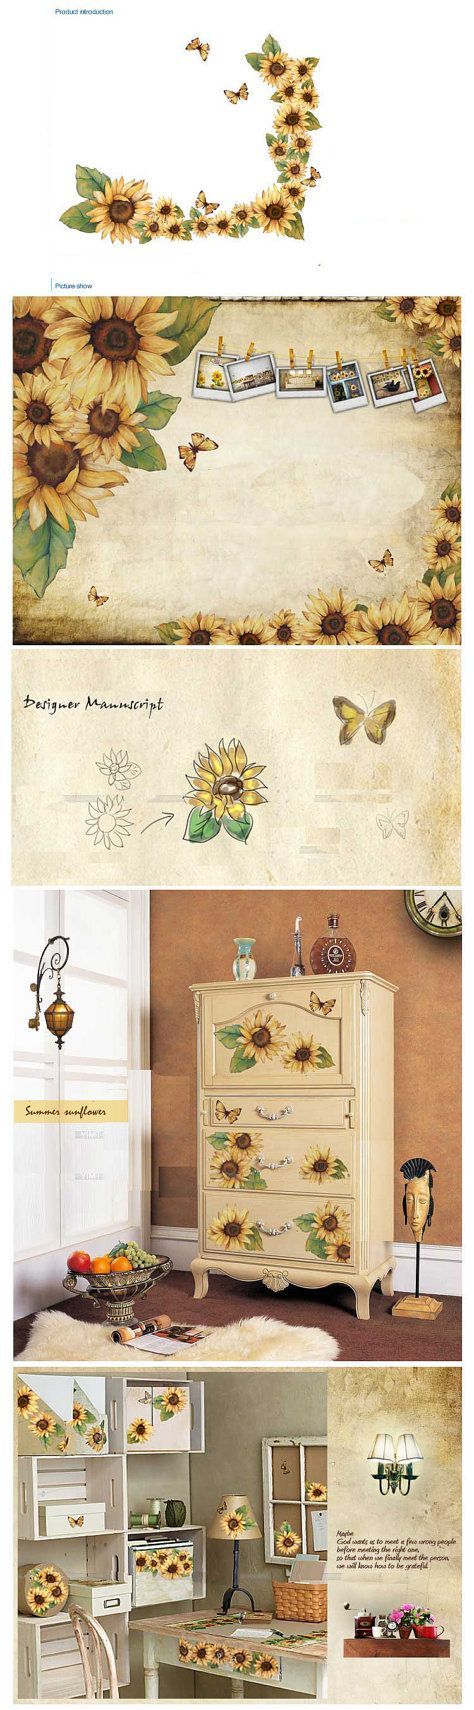 78 best sun flower images on pinterest sunflowers sunflower wall decal sun flowers wall decal wall by theeasylife 59 00